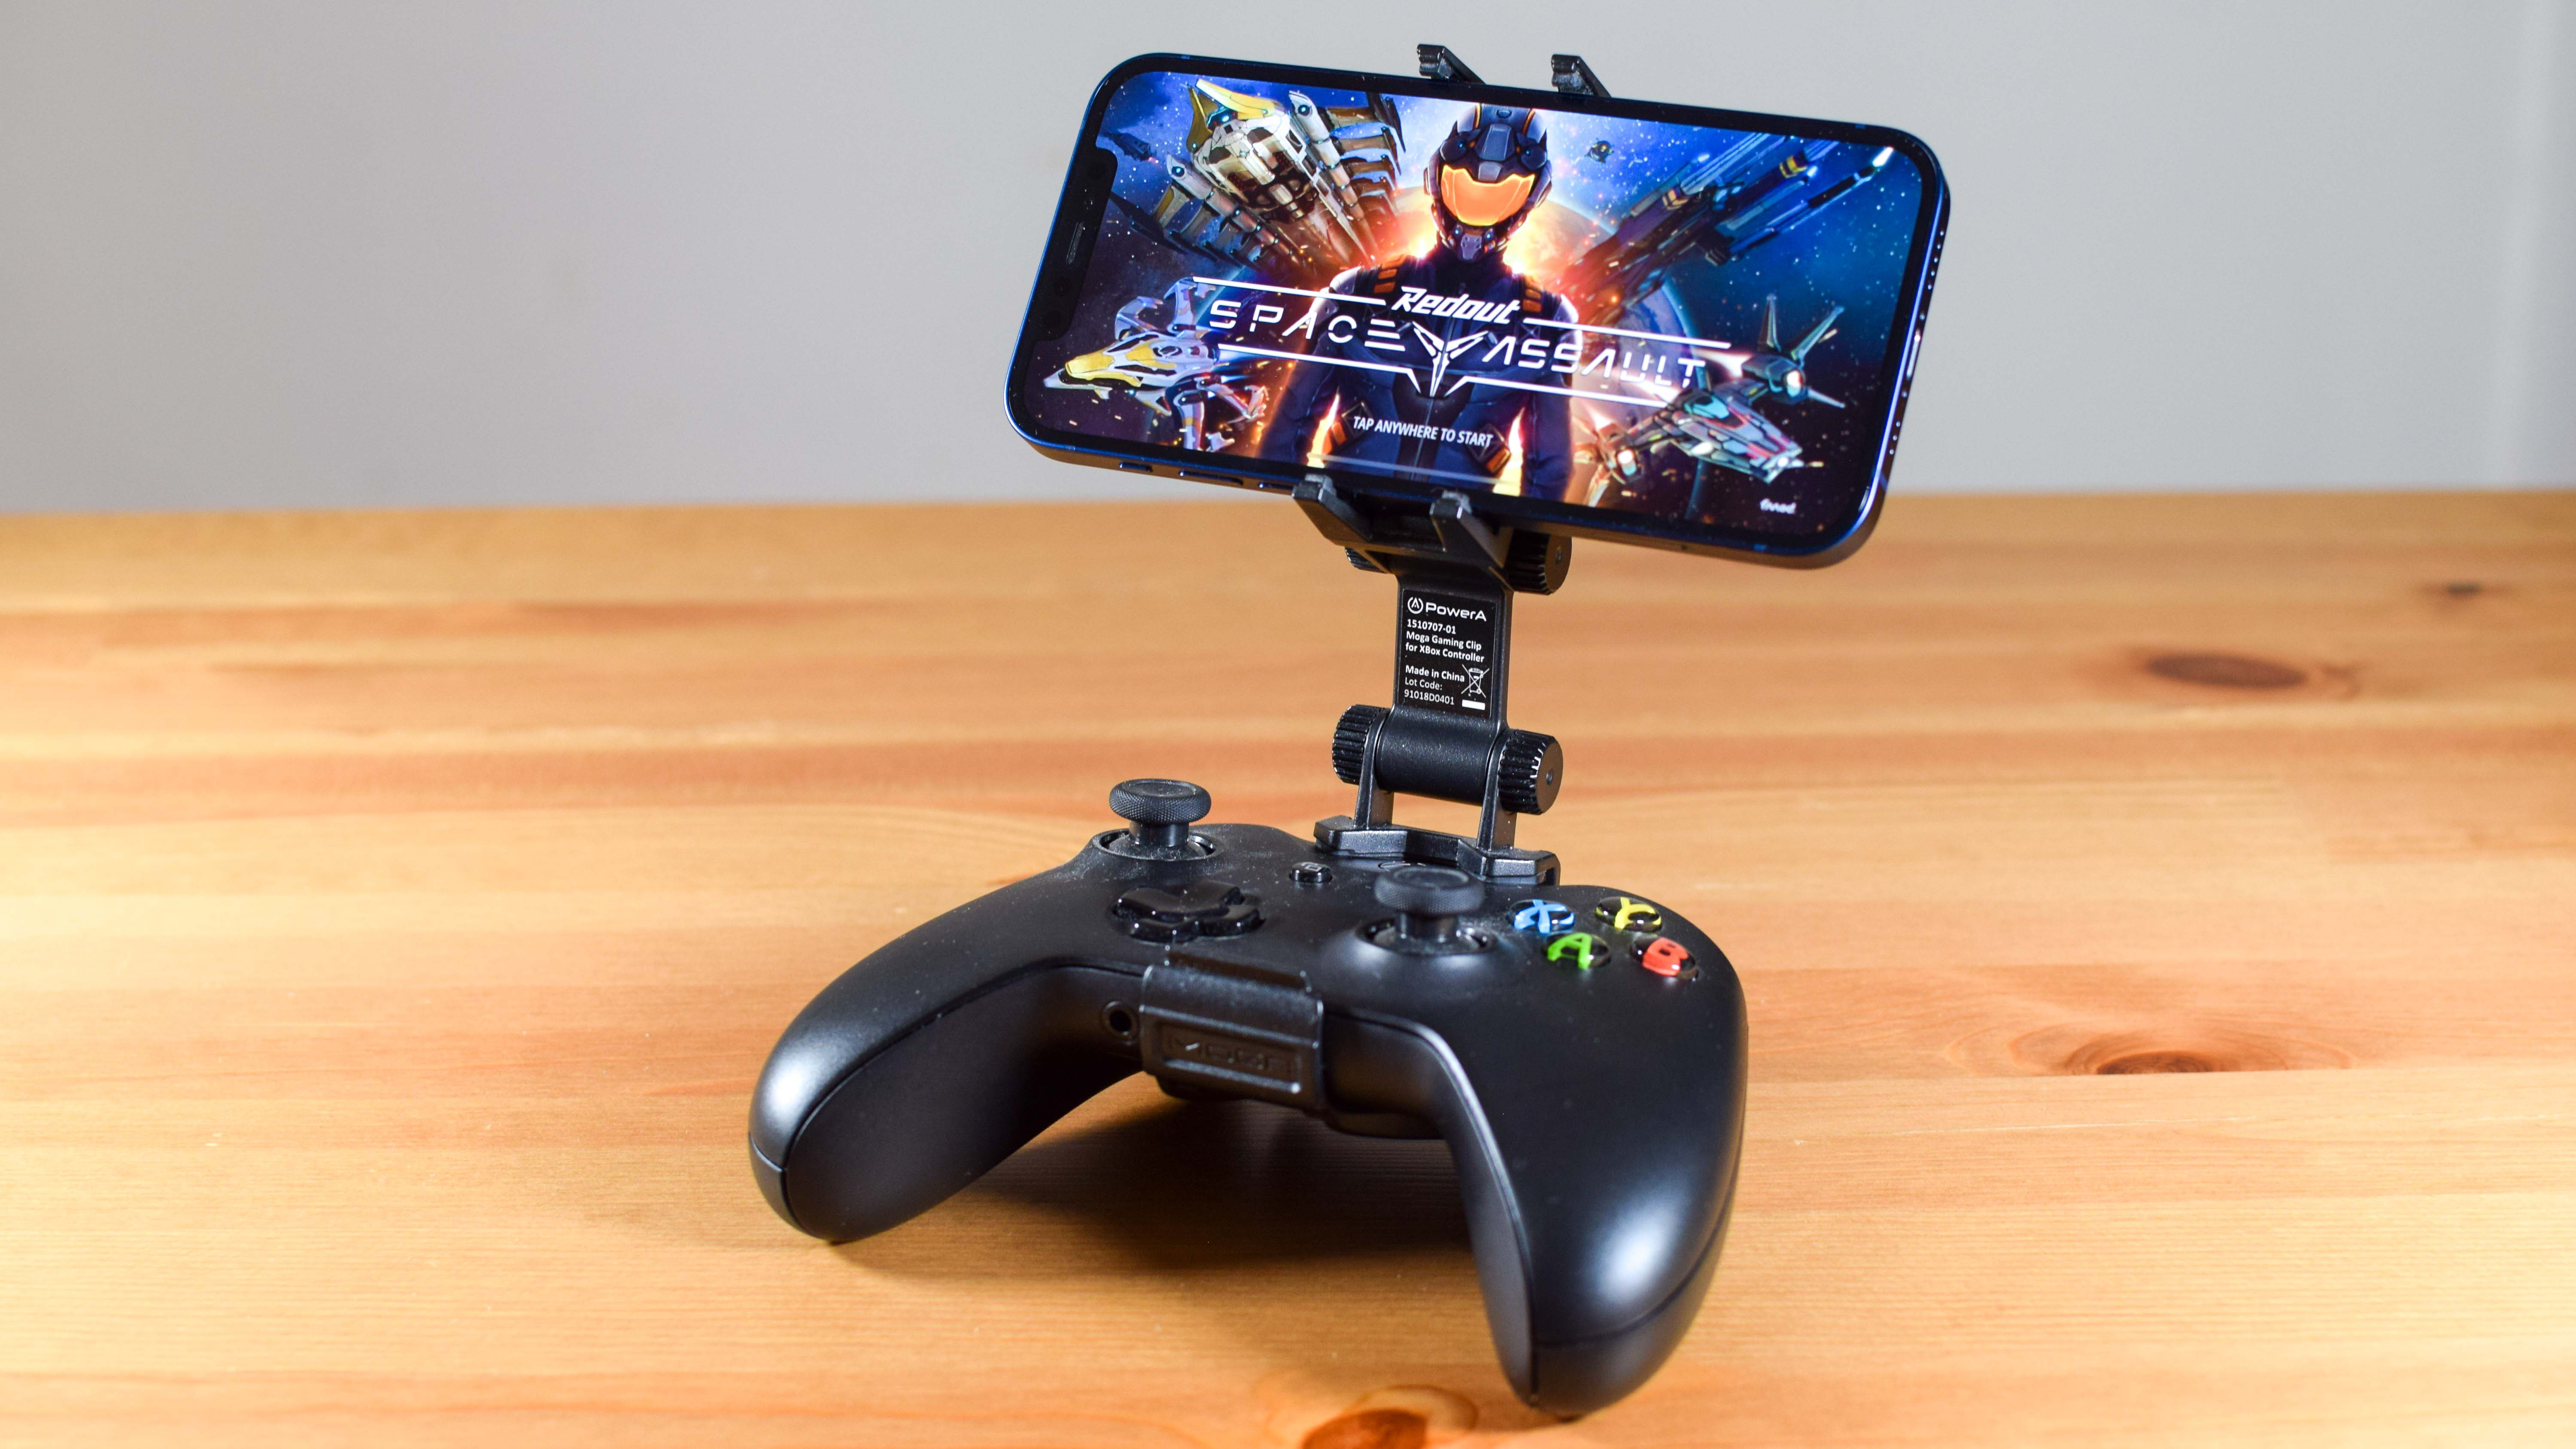 Xbox wireless controller and iPhone 12